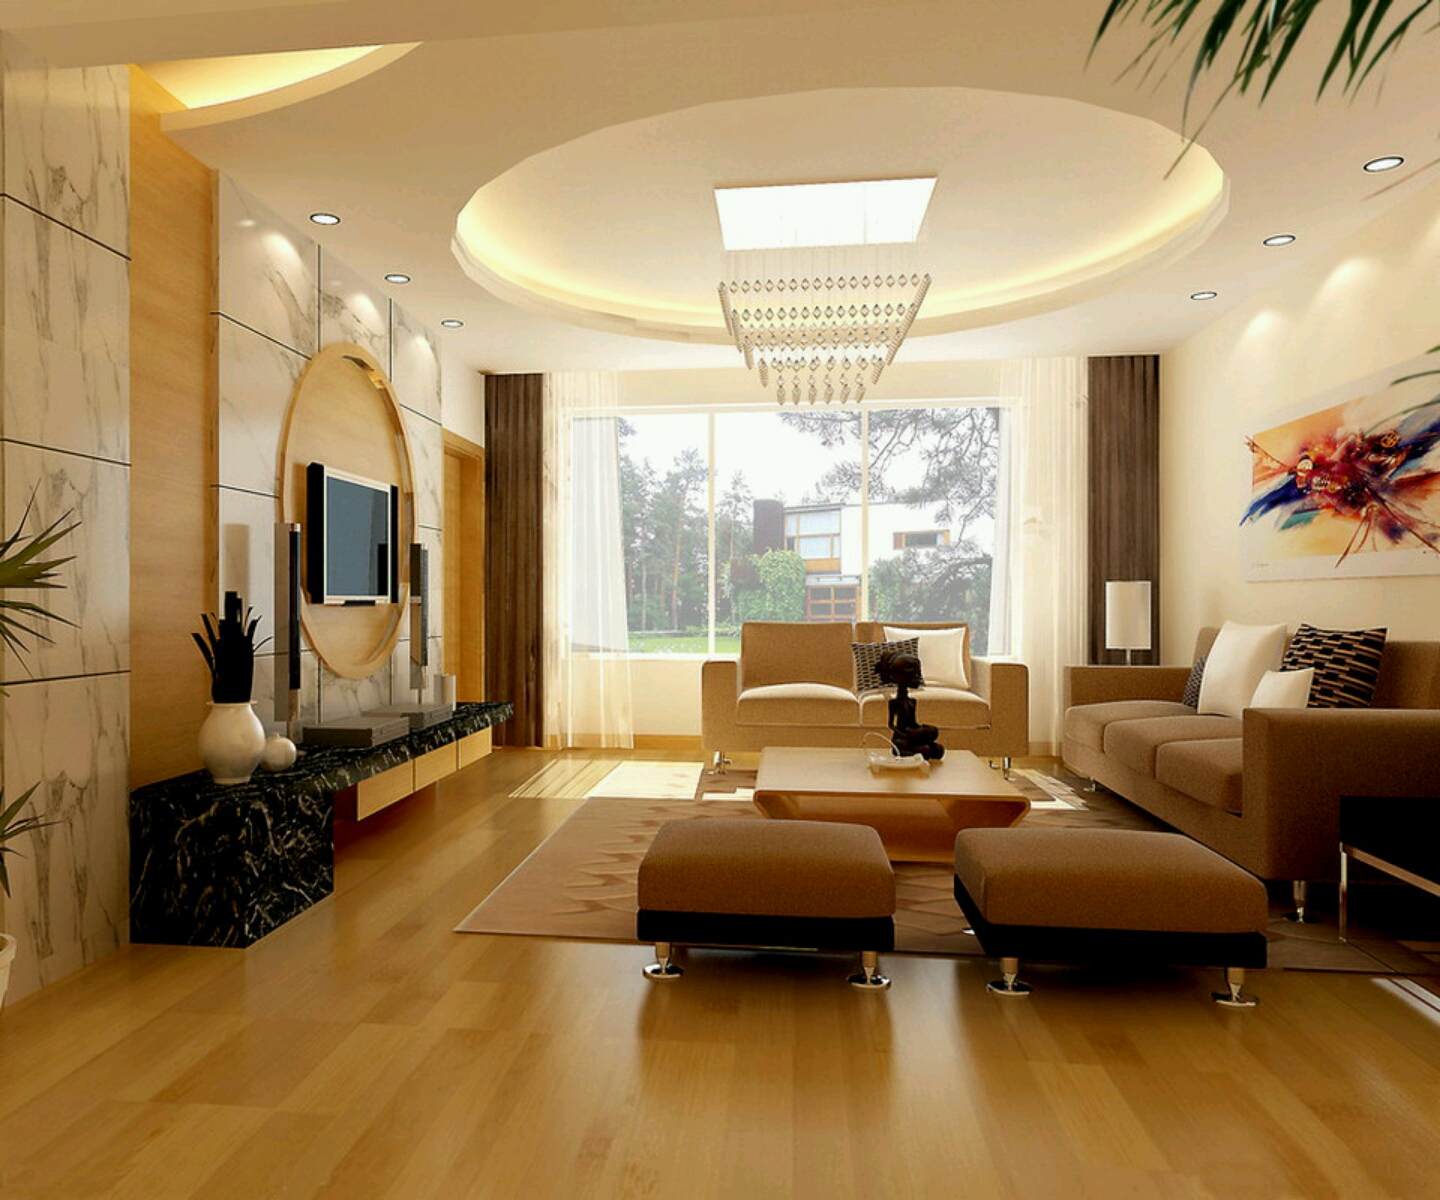 Modern interior decoration living rooms ceiling designs for Latest room design